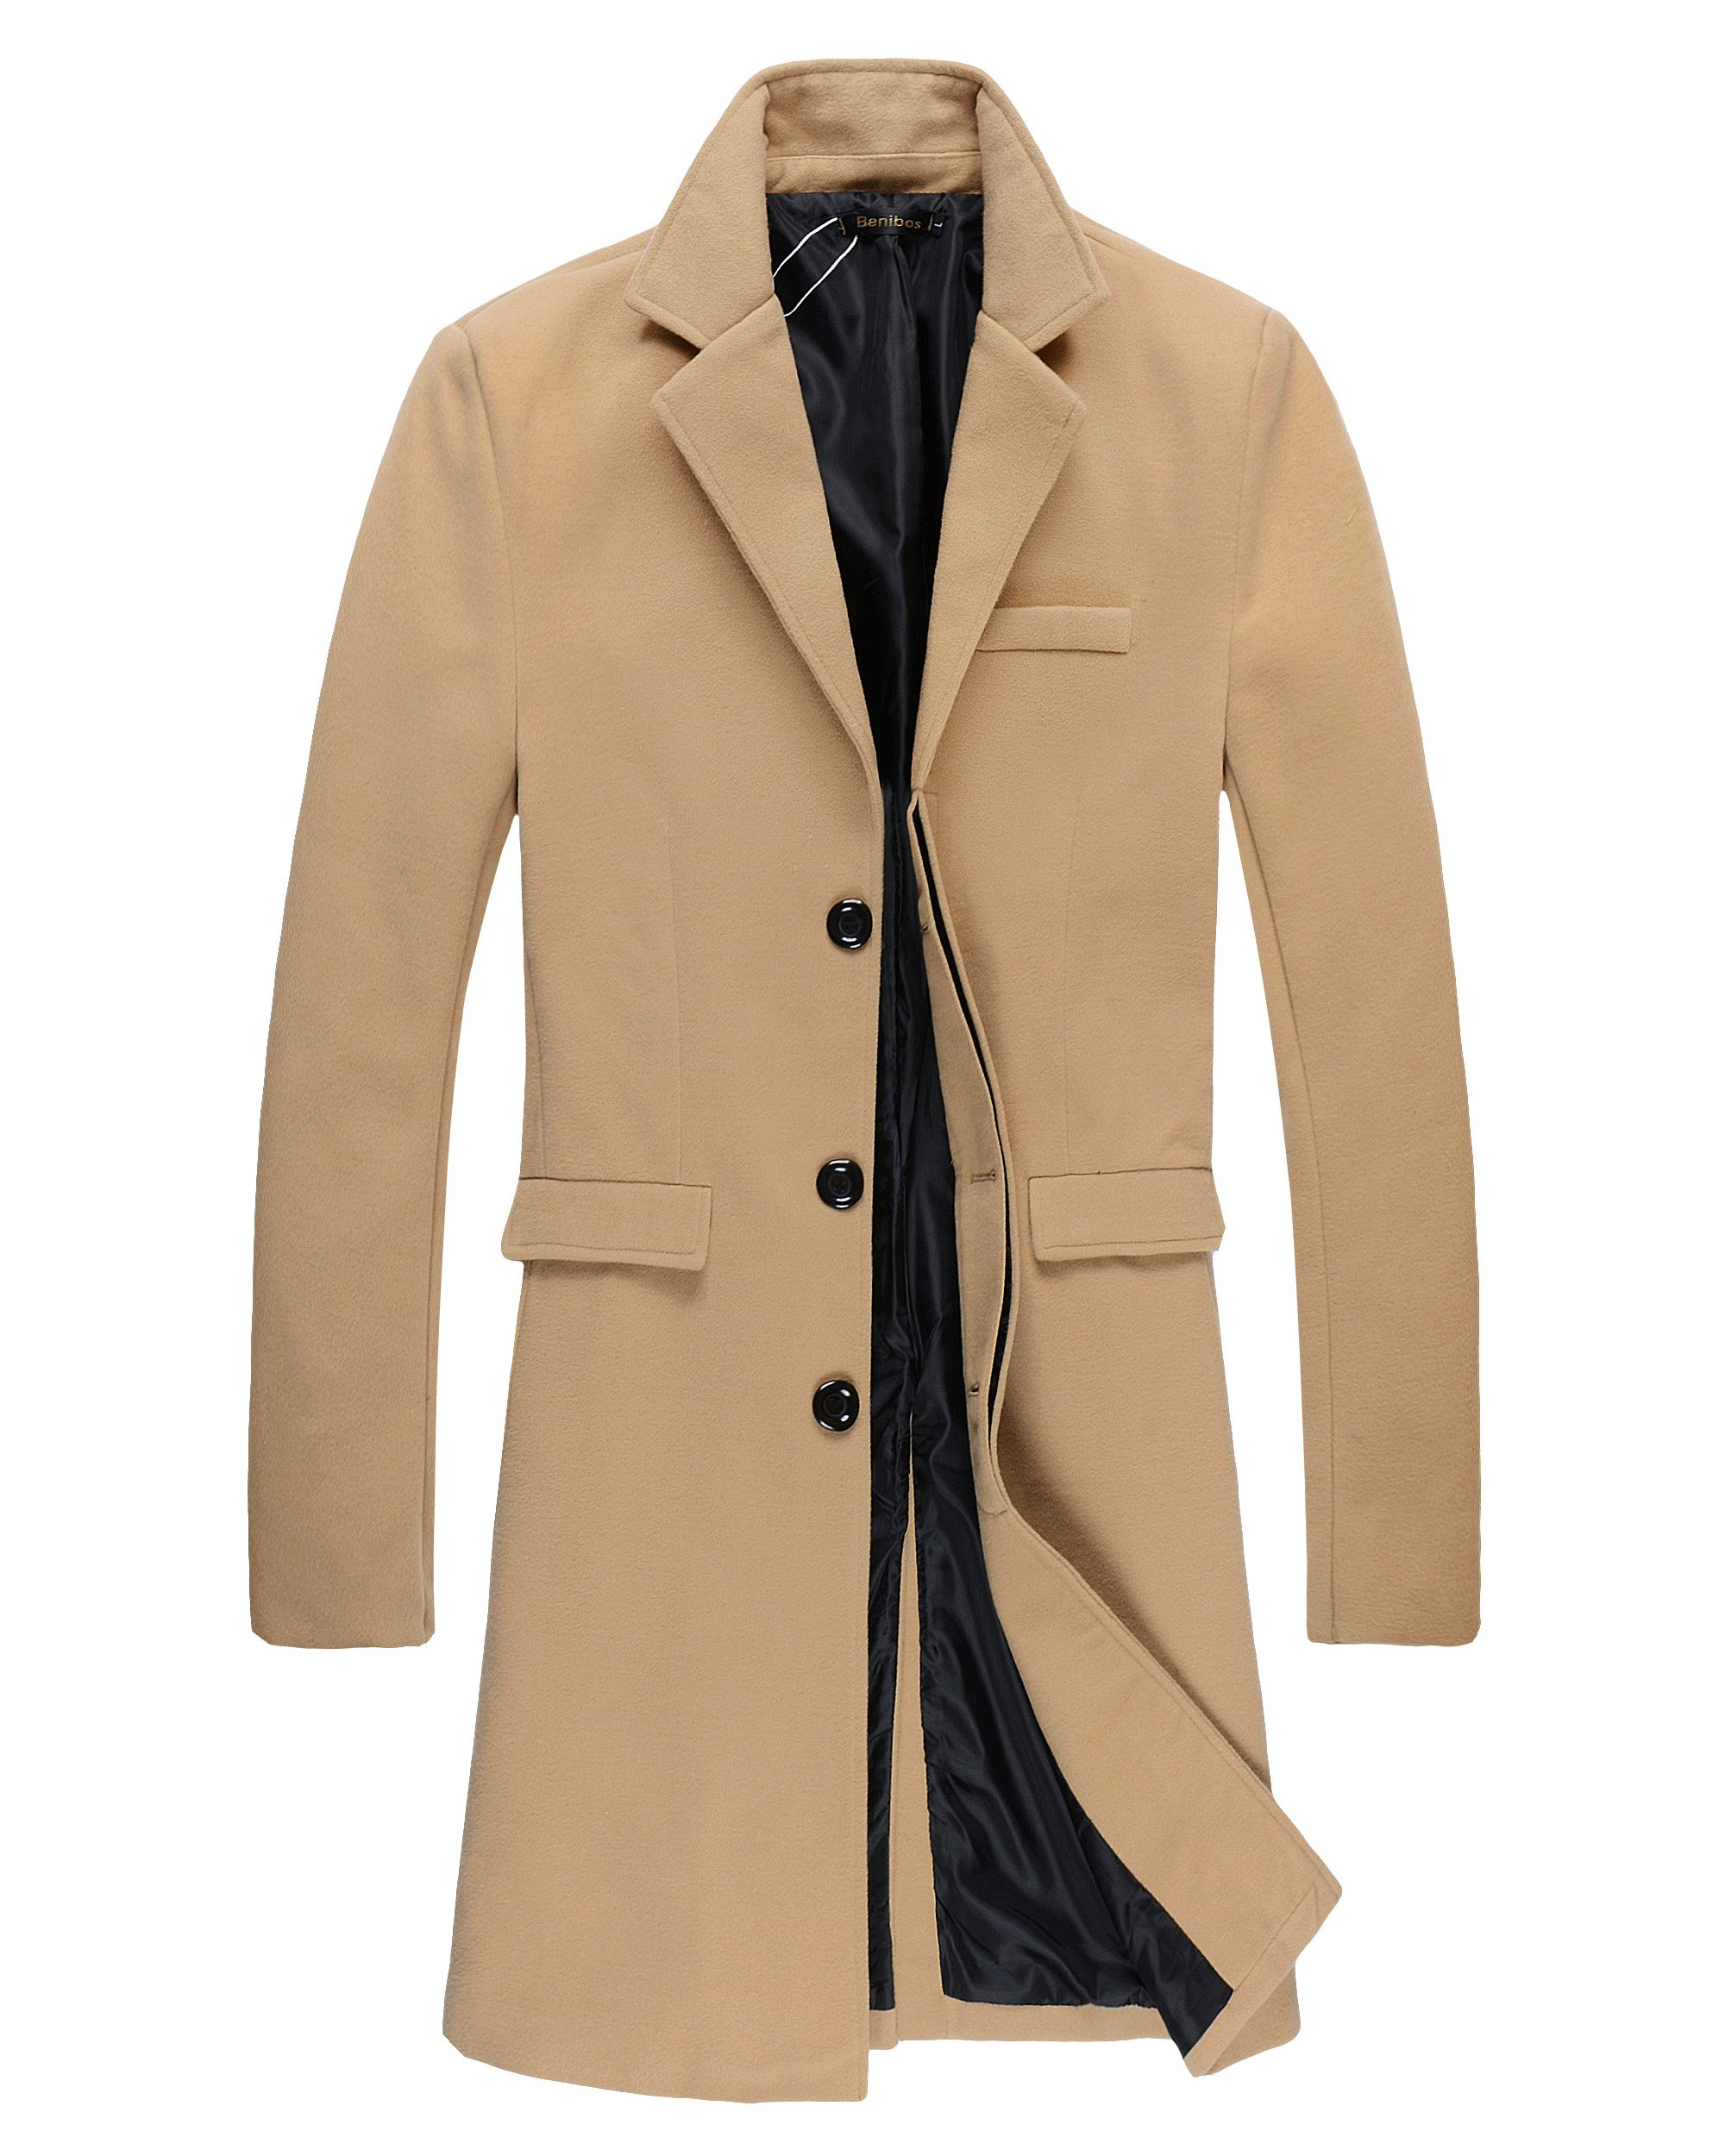 Benibos Mens Trench Coat Autumn Winter Long Jacket Overcoat(XL, 01Camel) by Benibos